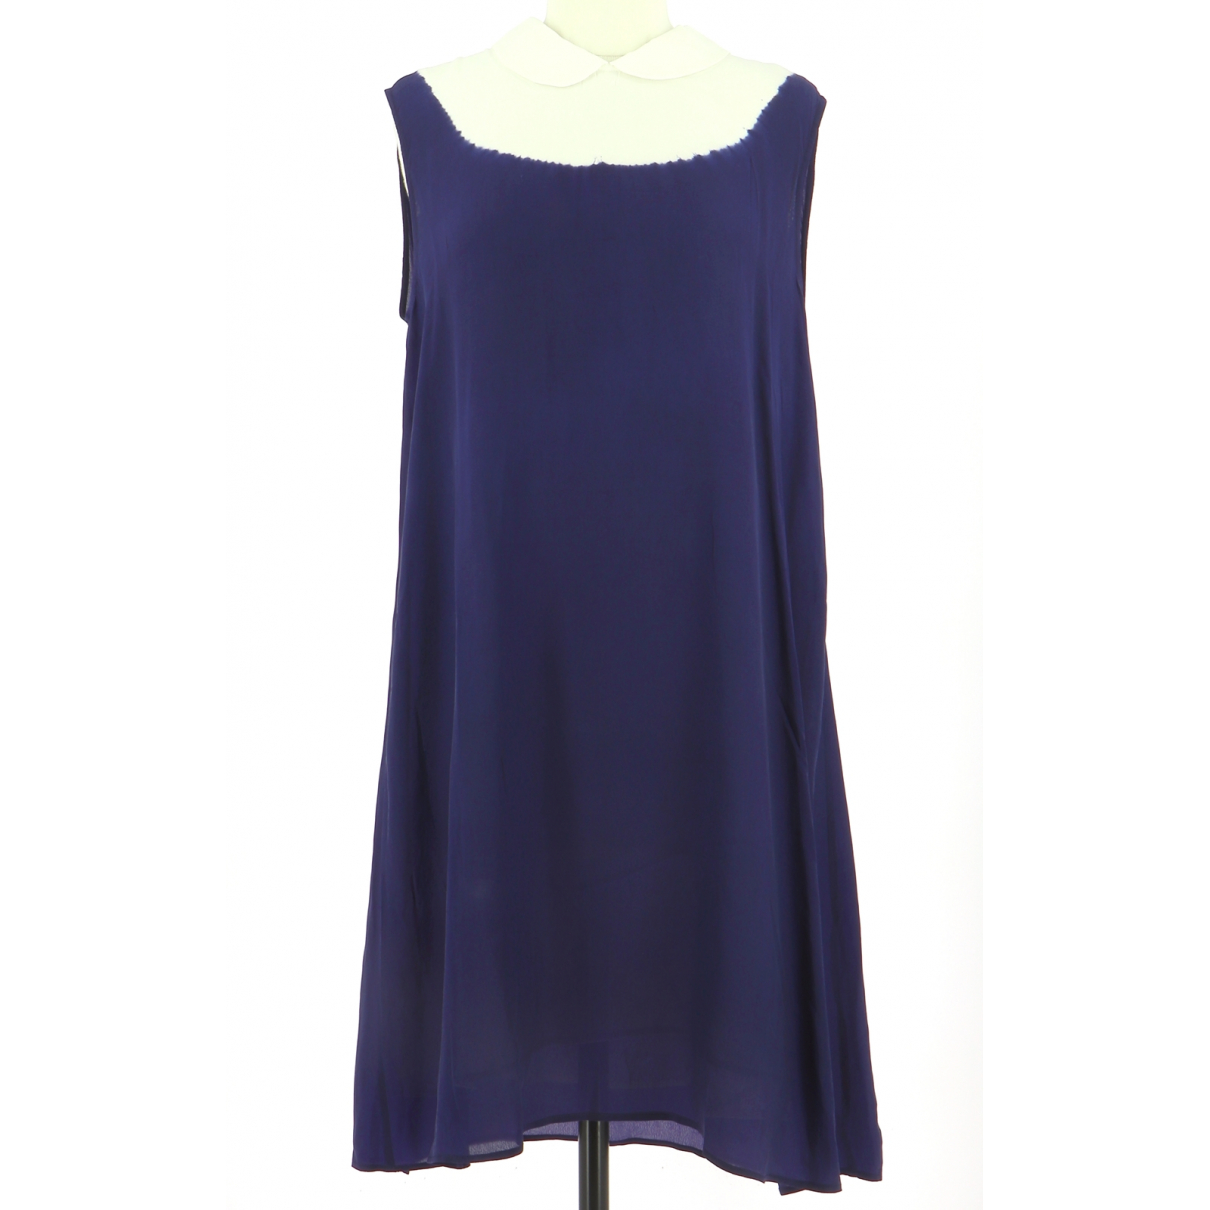 Claudie Pierlot \N Navy dress for Women 40 FR